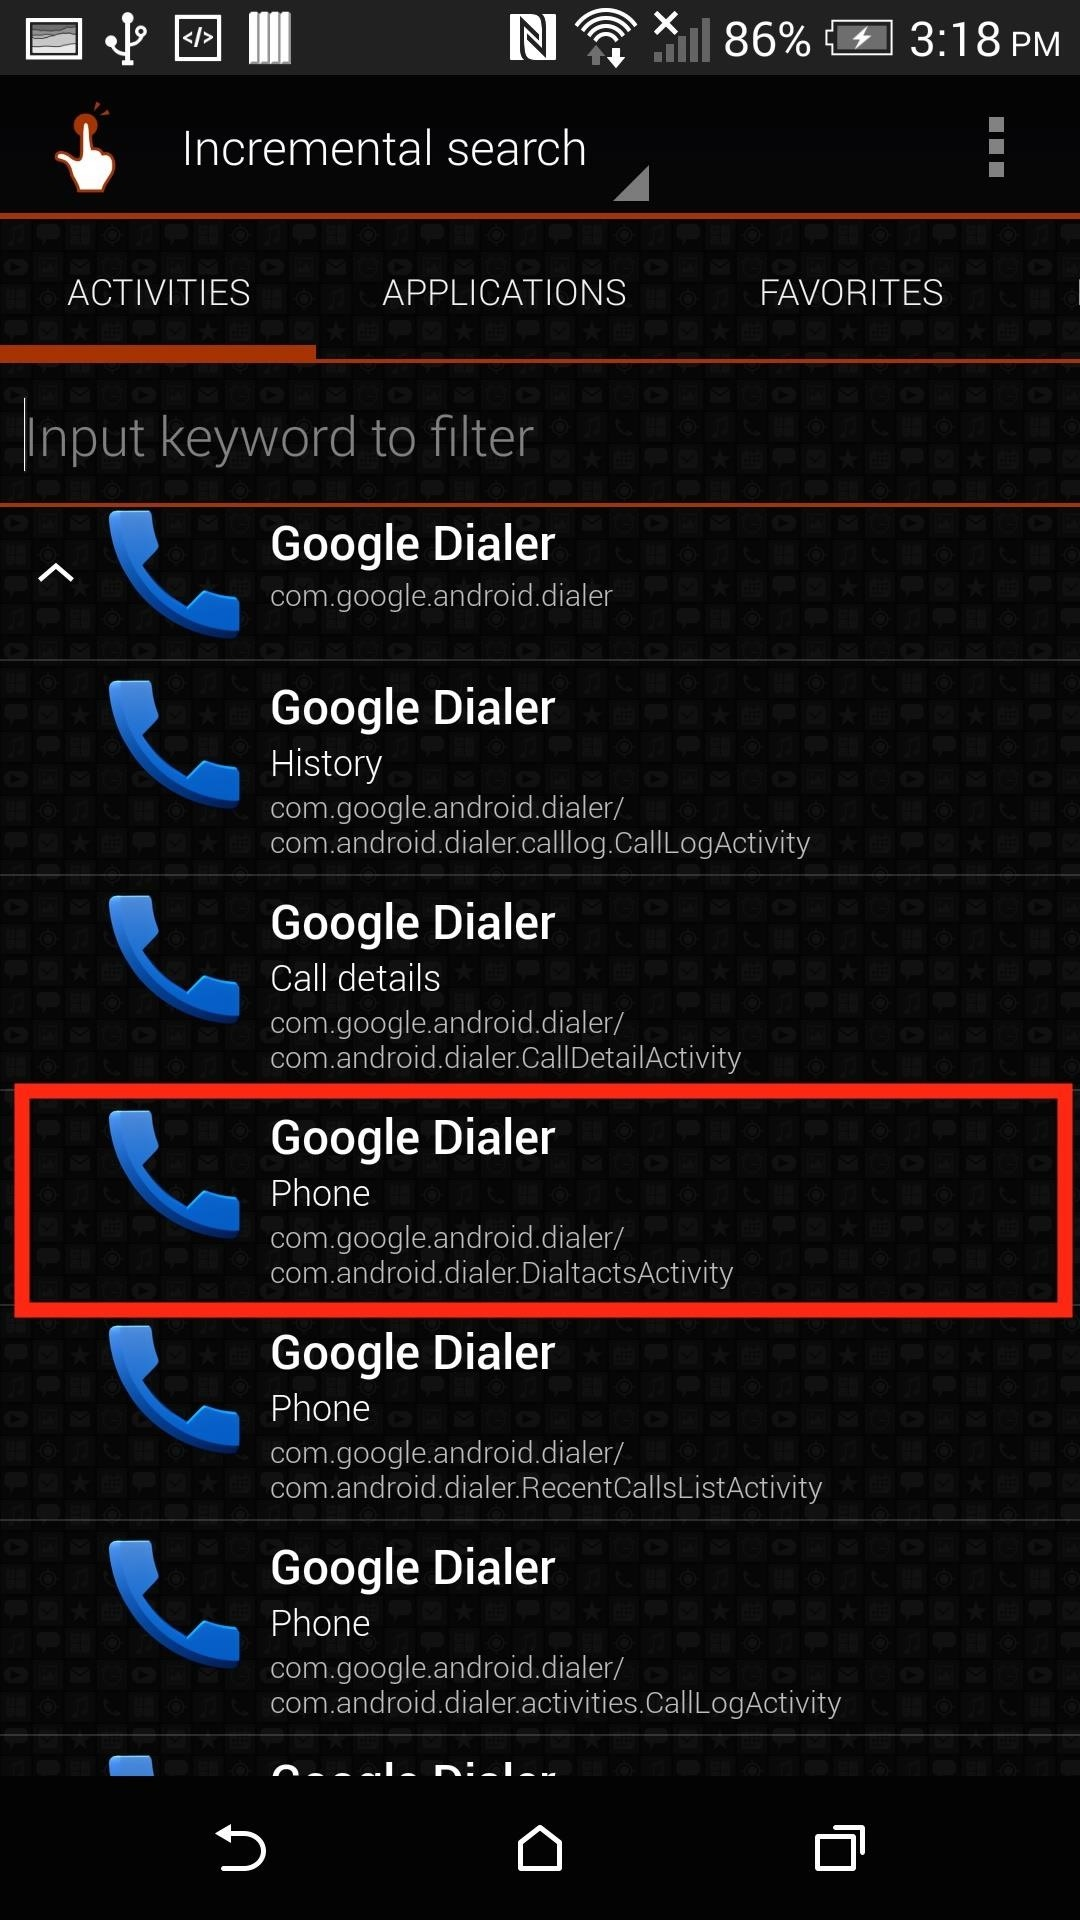 How to Install the New KitKat 4.4.3 Dialer on Your HTC One